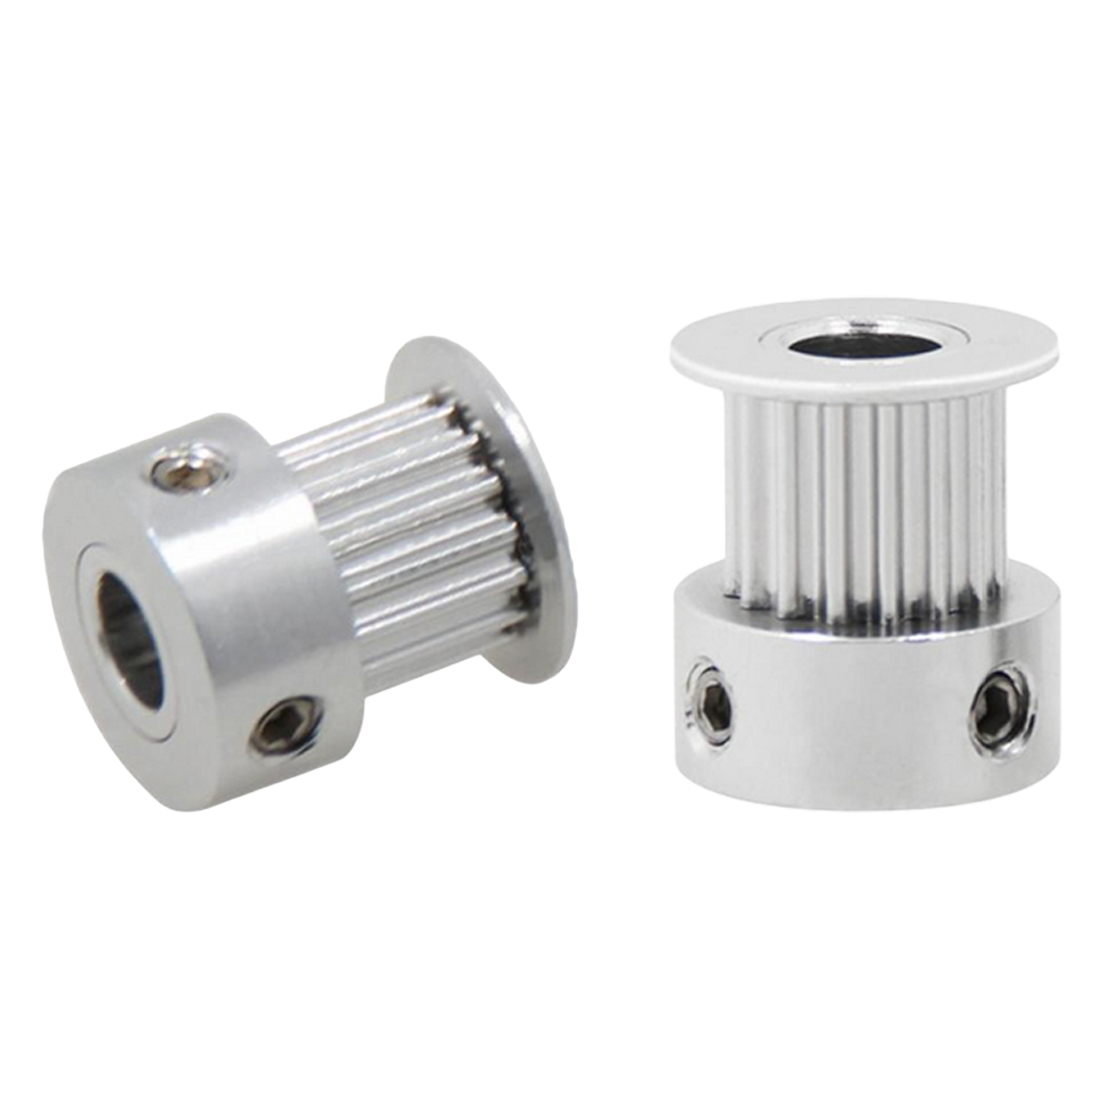 1pcs/5pcs GT2 Timing Pulley 16 Teeth Wheel Bore 5mm Aluminium Gear 3D Printers Parts